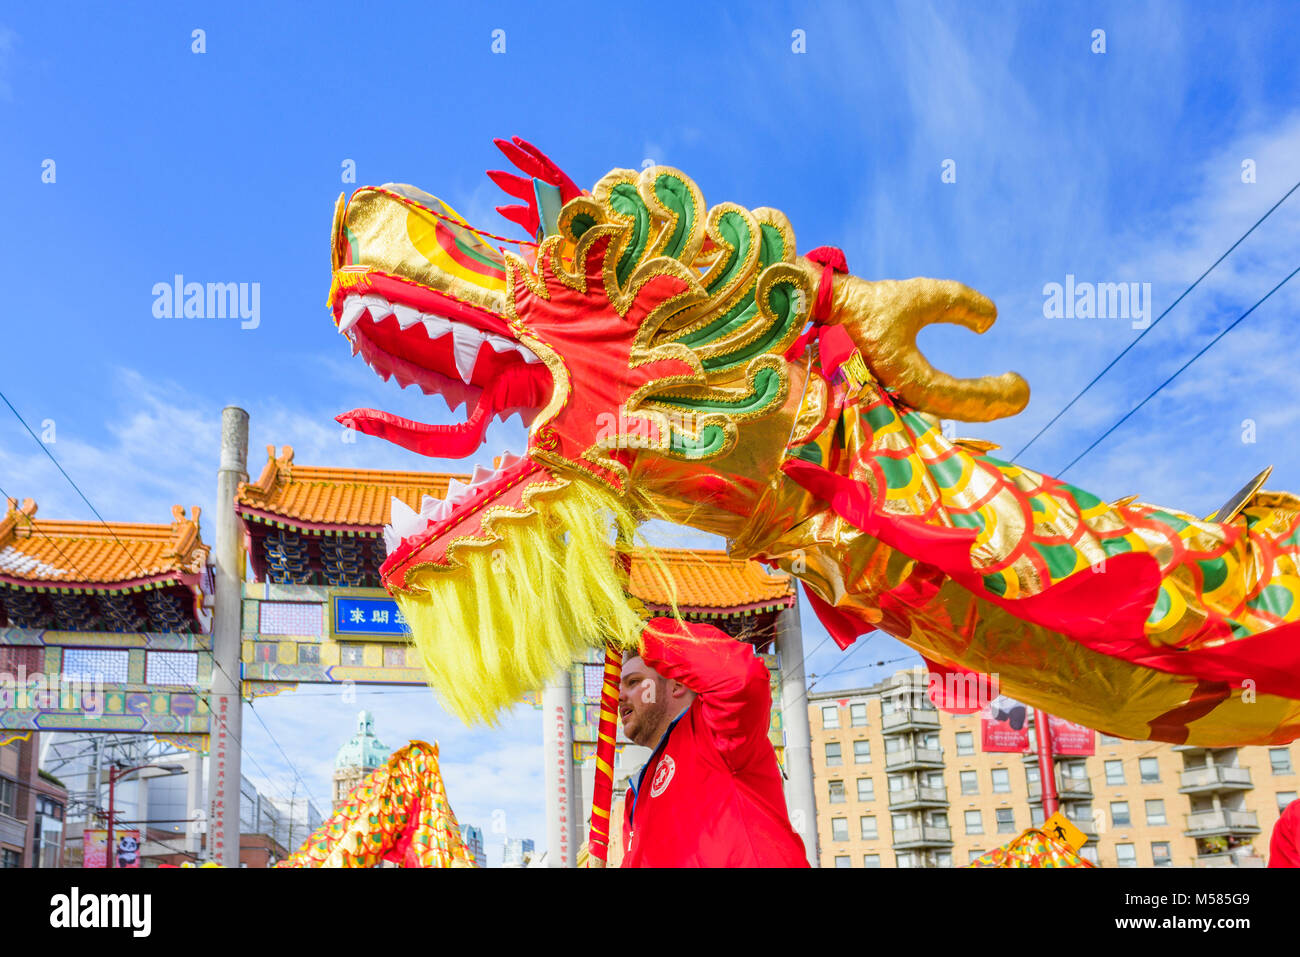 Chinese Lunar New Year Parade, Chinatown, Vancouver, British Columbia, Canada. - Stock Image